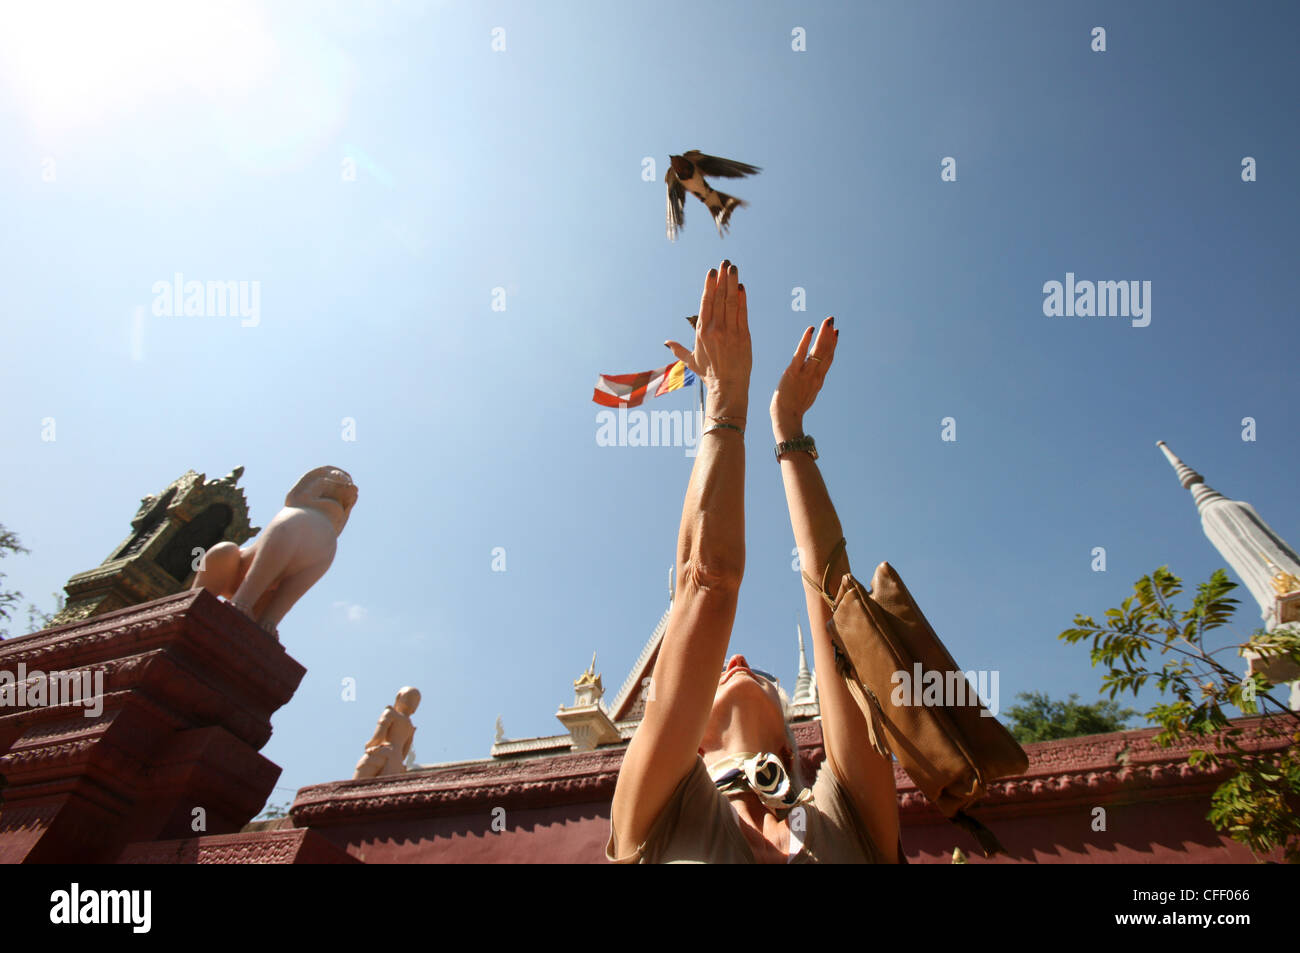 Woman releases sparrow, Phnom Penh, Cambodia, Indochina, Southeast Asia, Asia Stock Photo